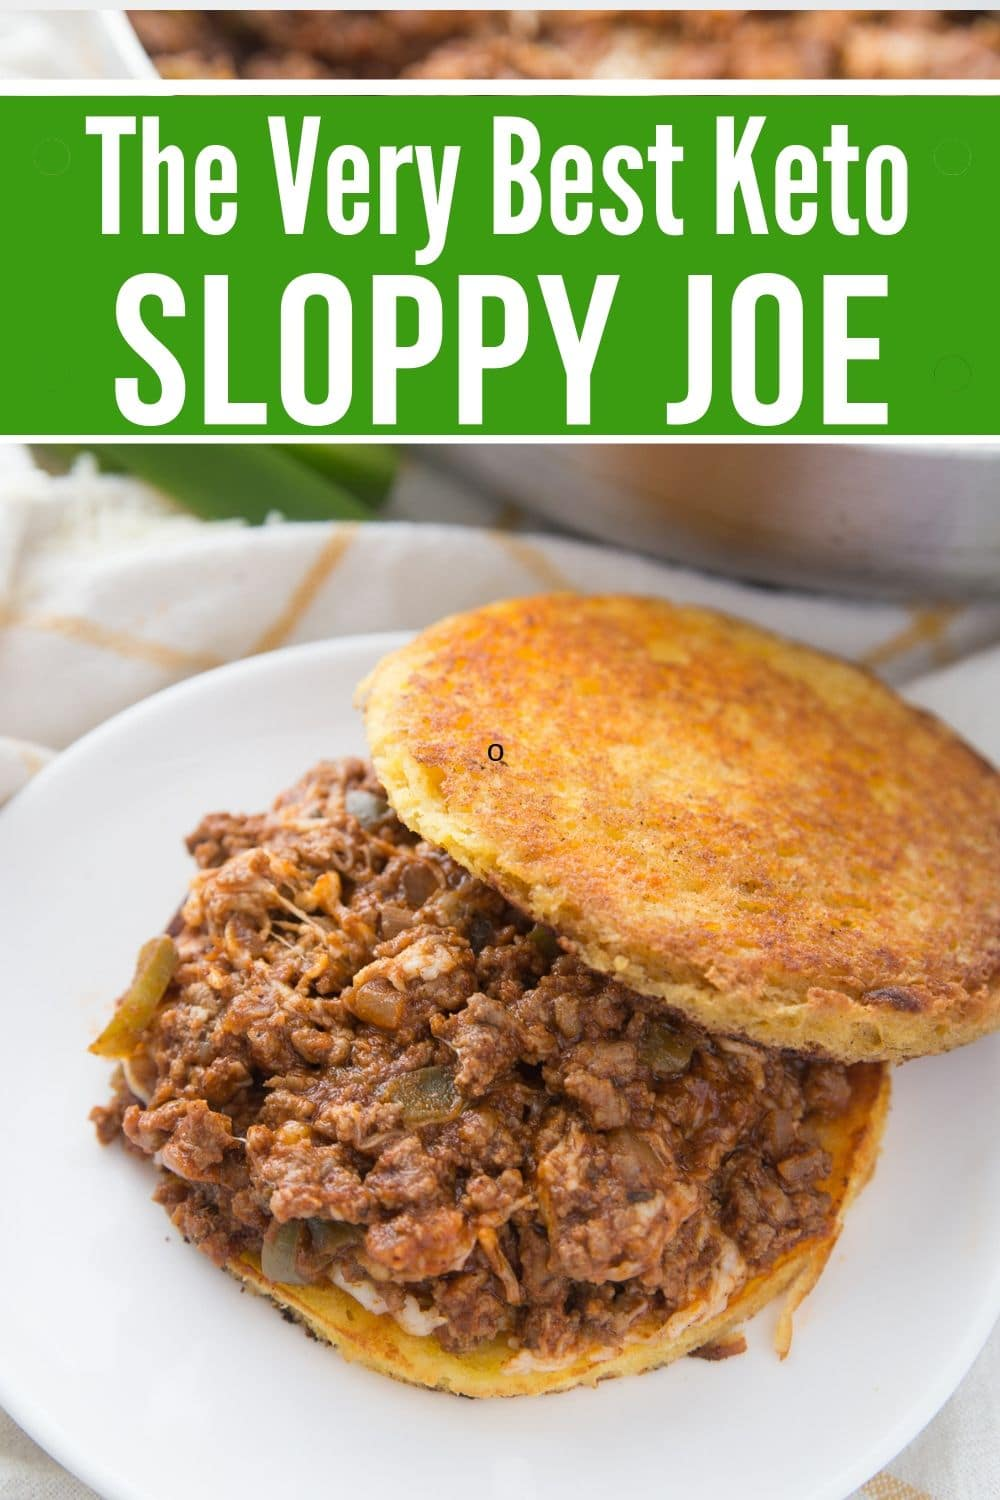 Keto Sloppy Joe on 90-Second Bread plated with a skillet in the background